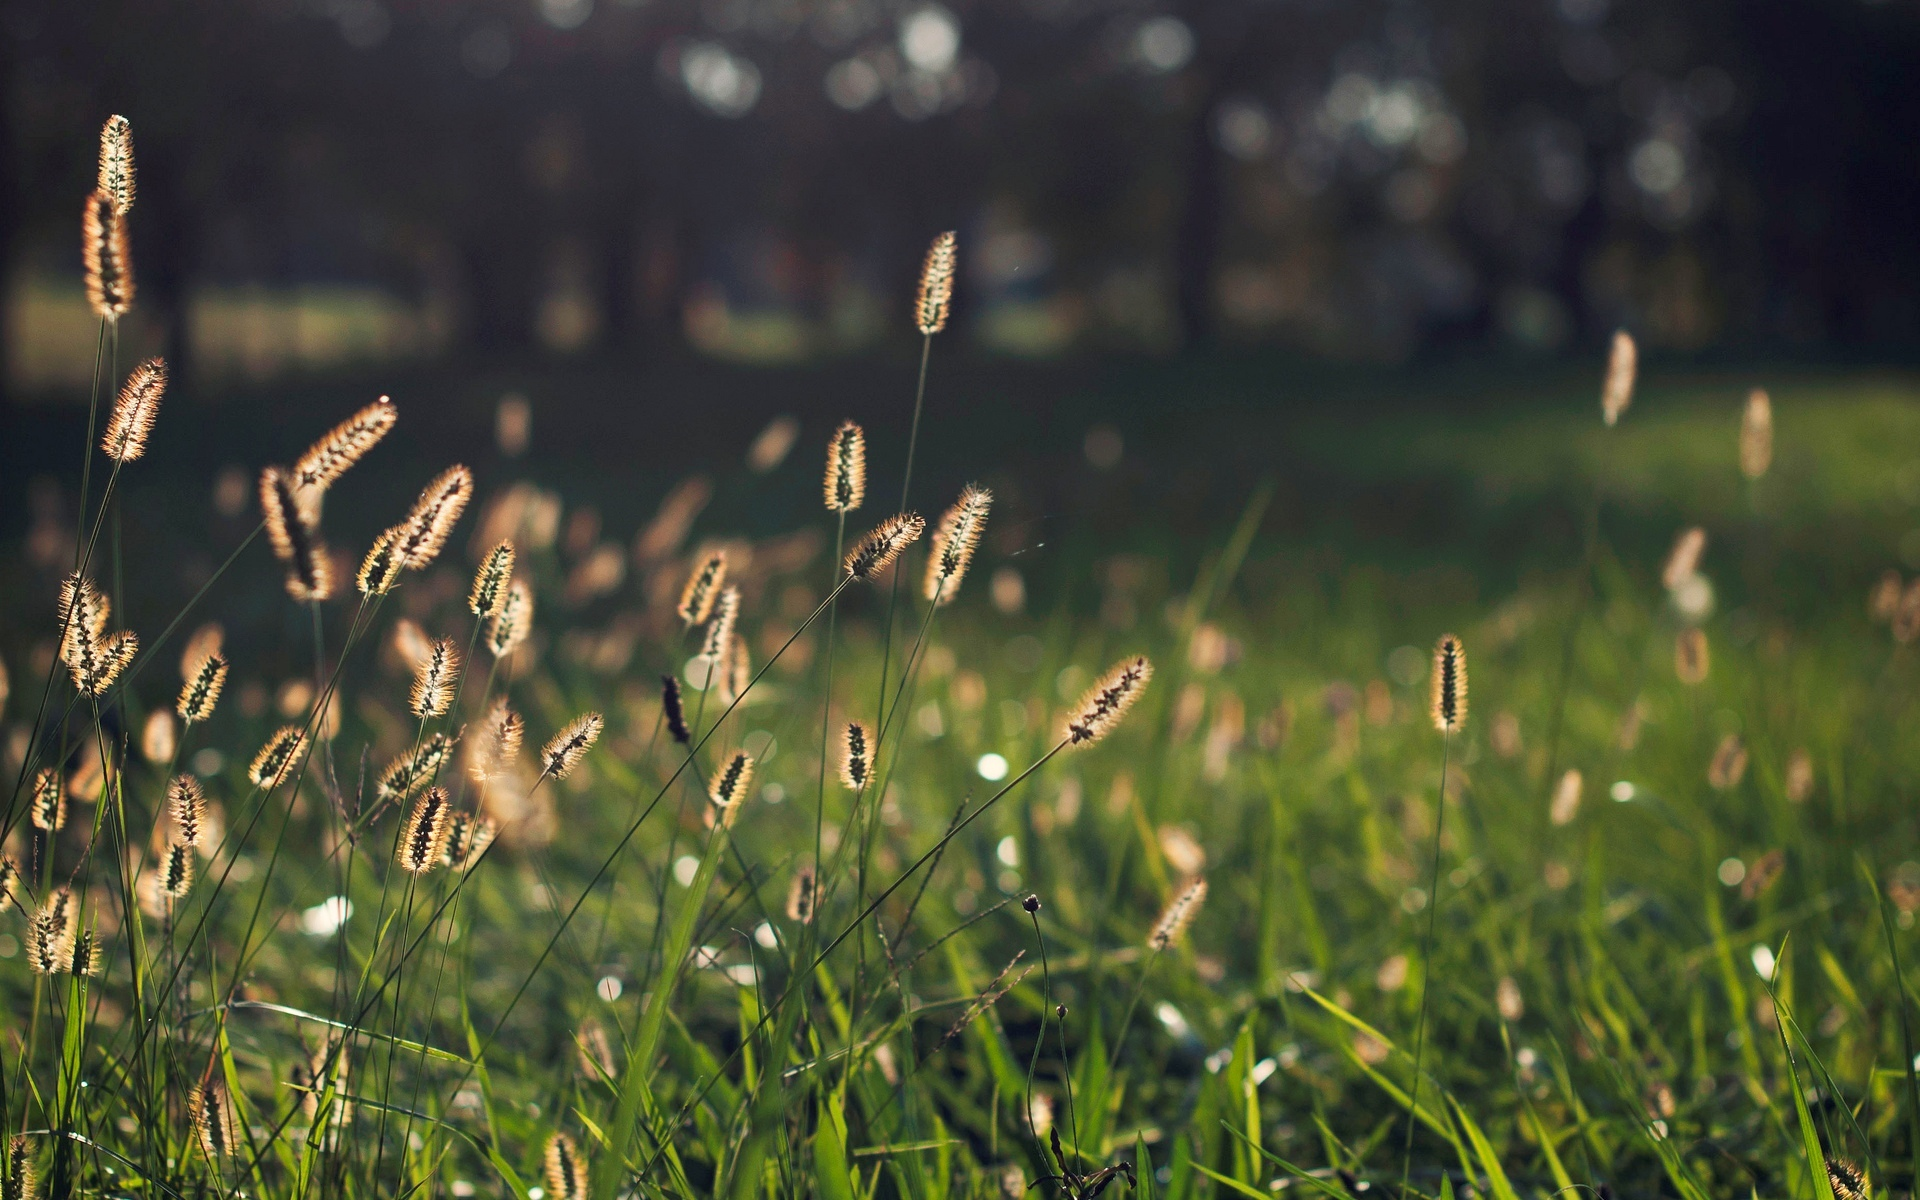 Grass Bokeh Wallpaper